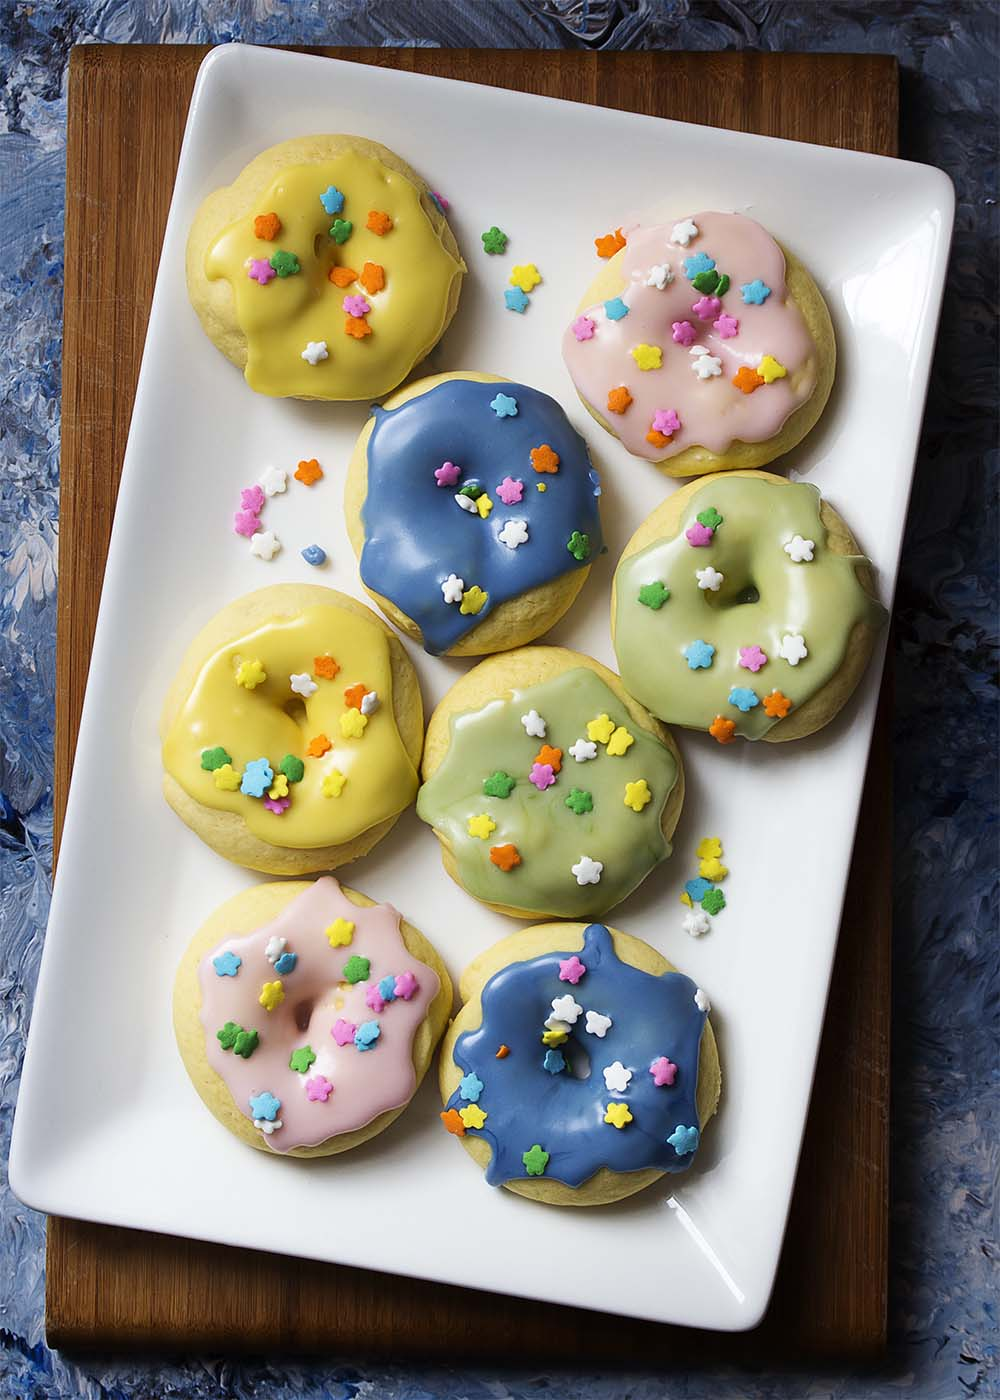 Top view of a platter of several colorfully glazed ring cookies topped with sprinkles.